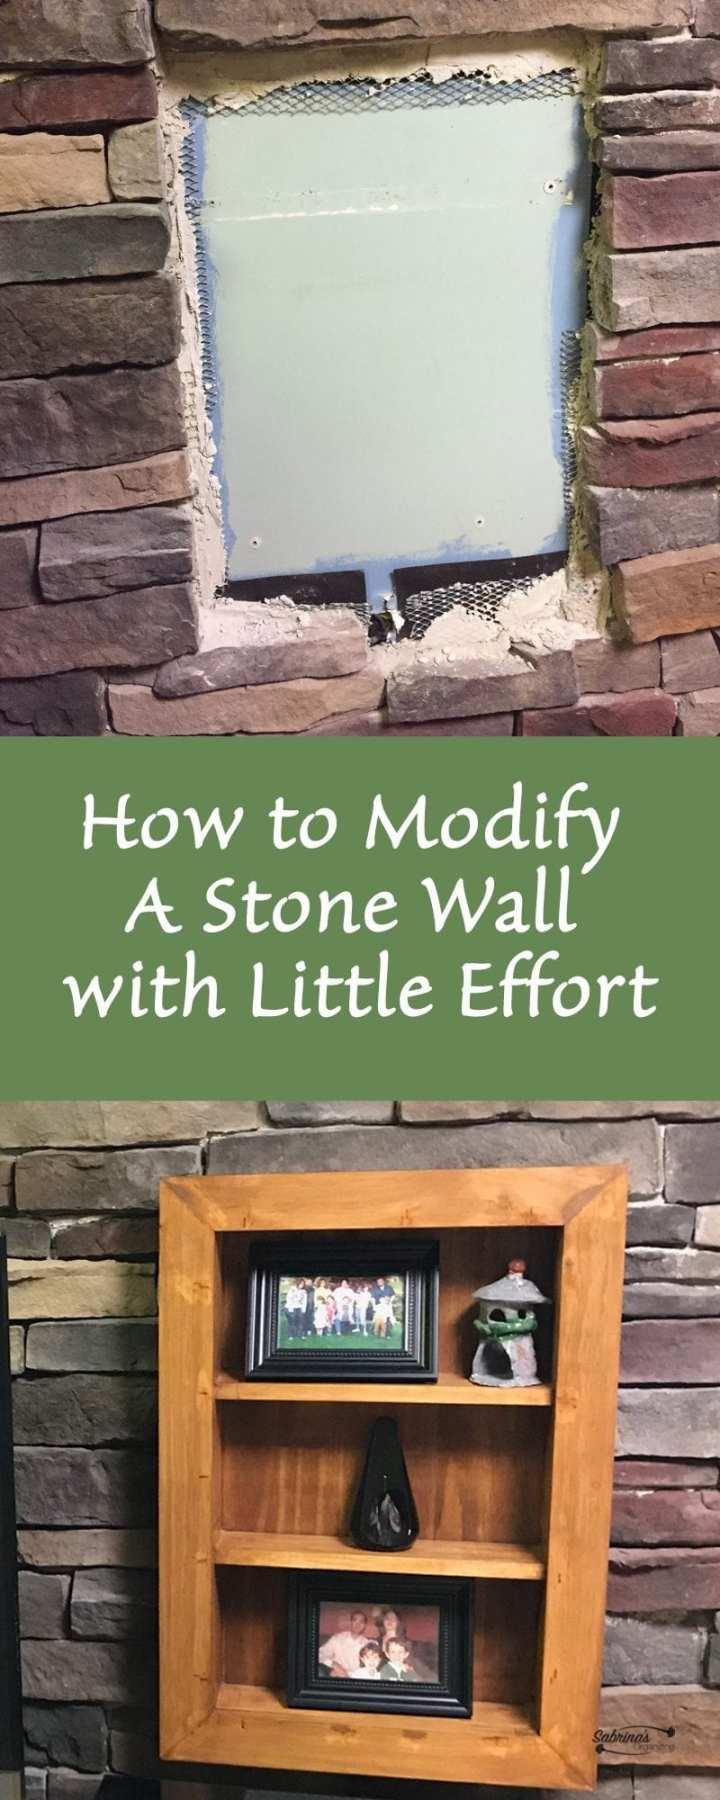 How to modify a stone wall with little effort